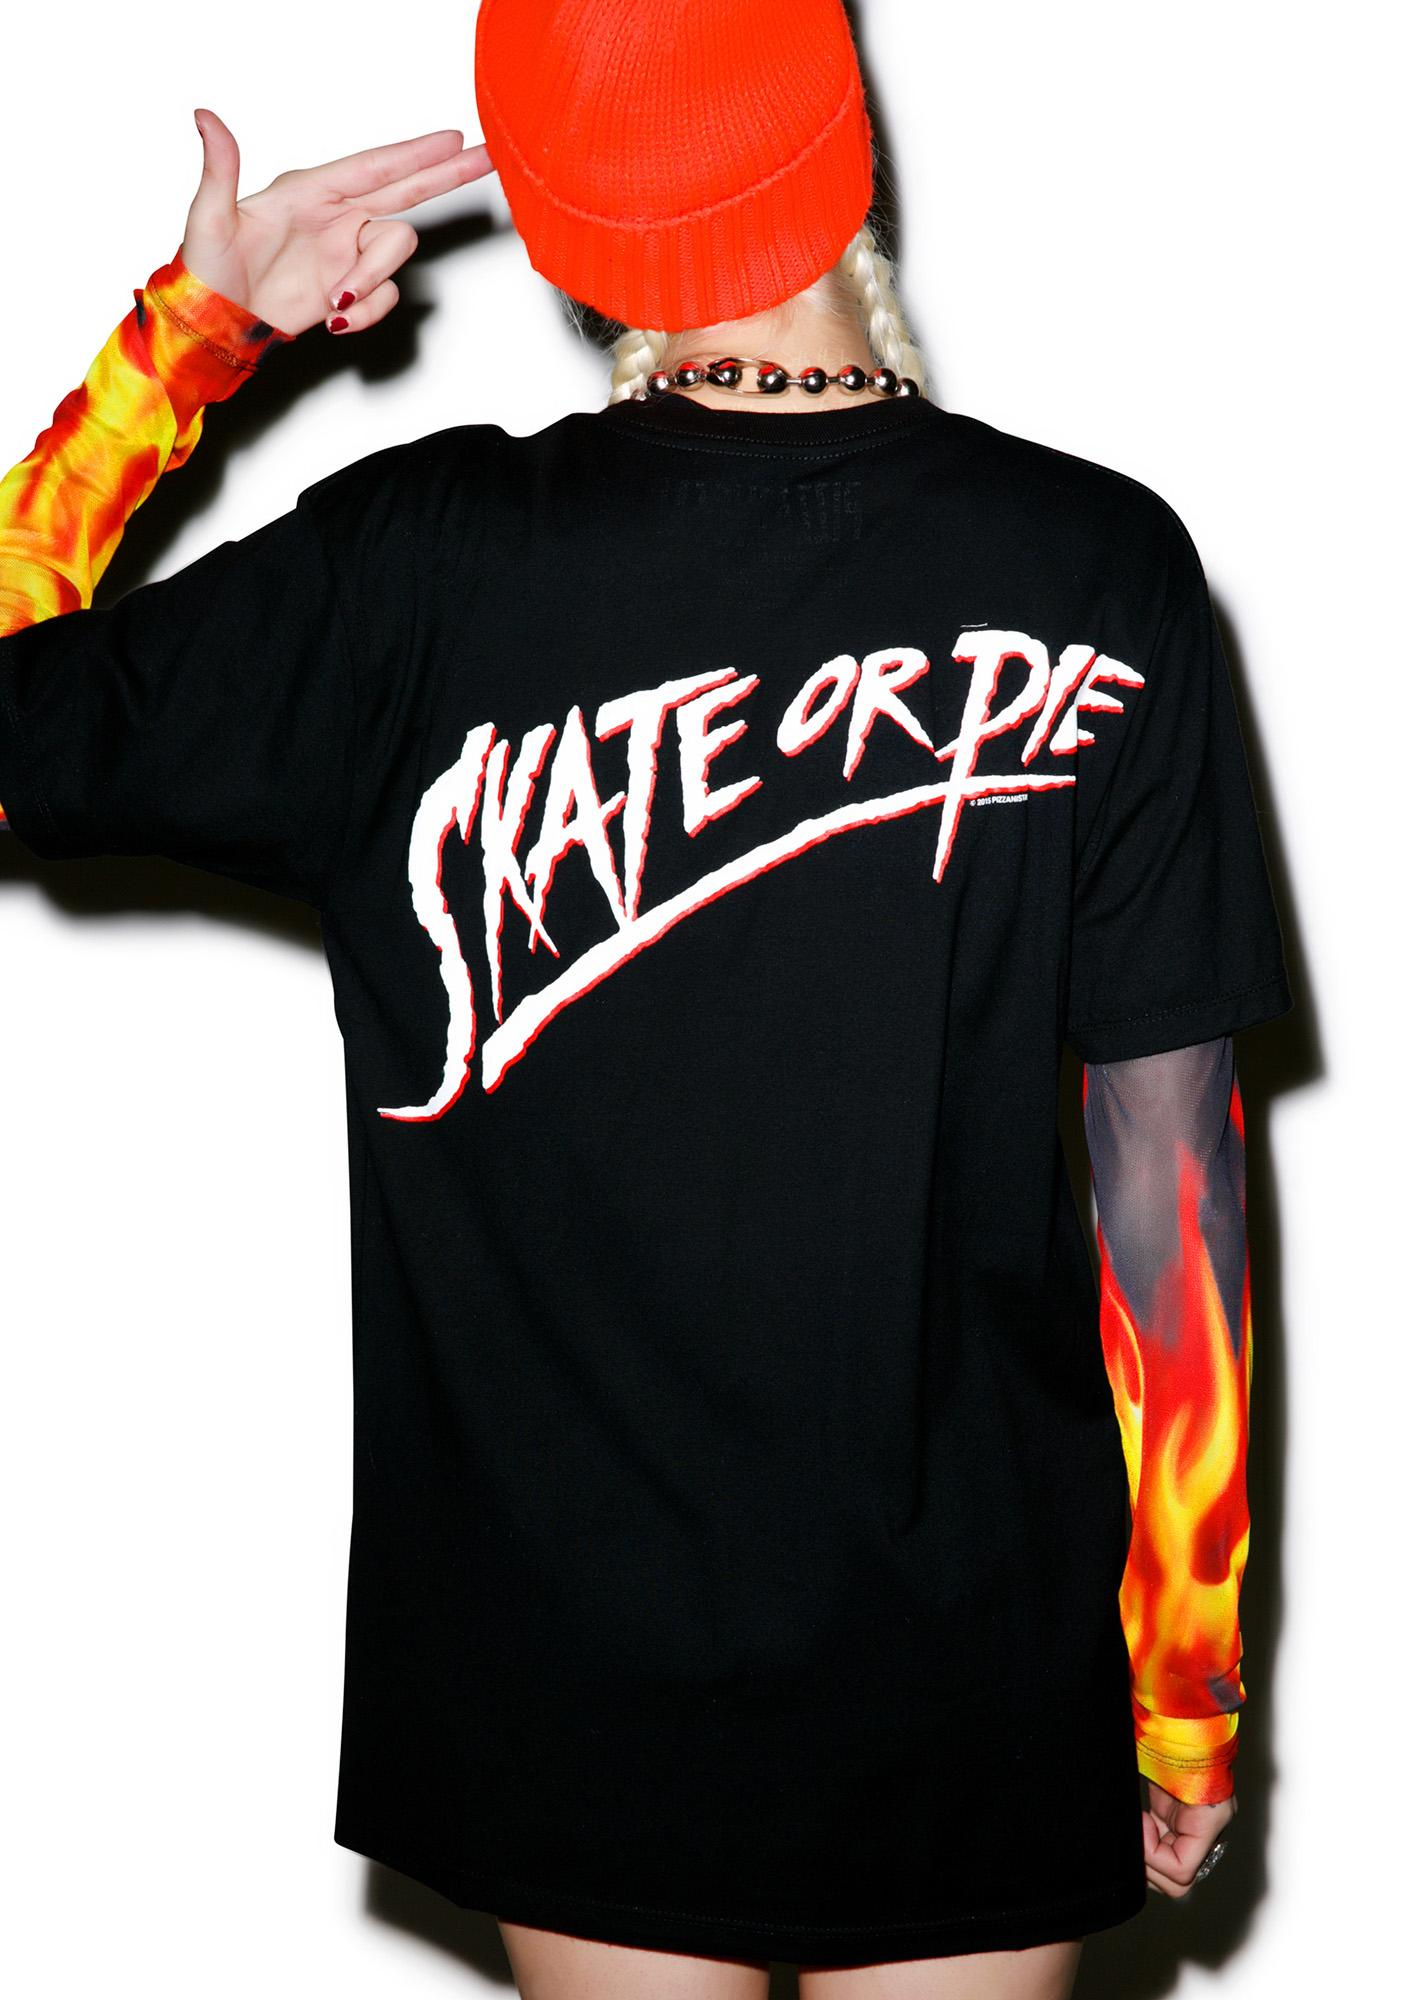 Pizzanista Skate Or Pie Tee